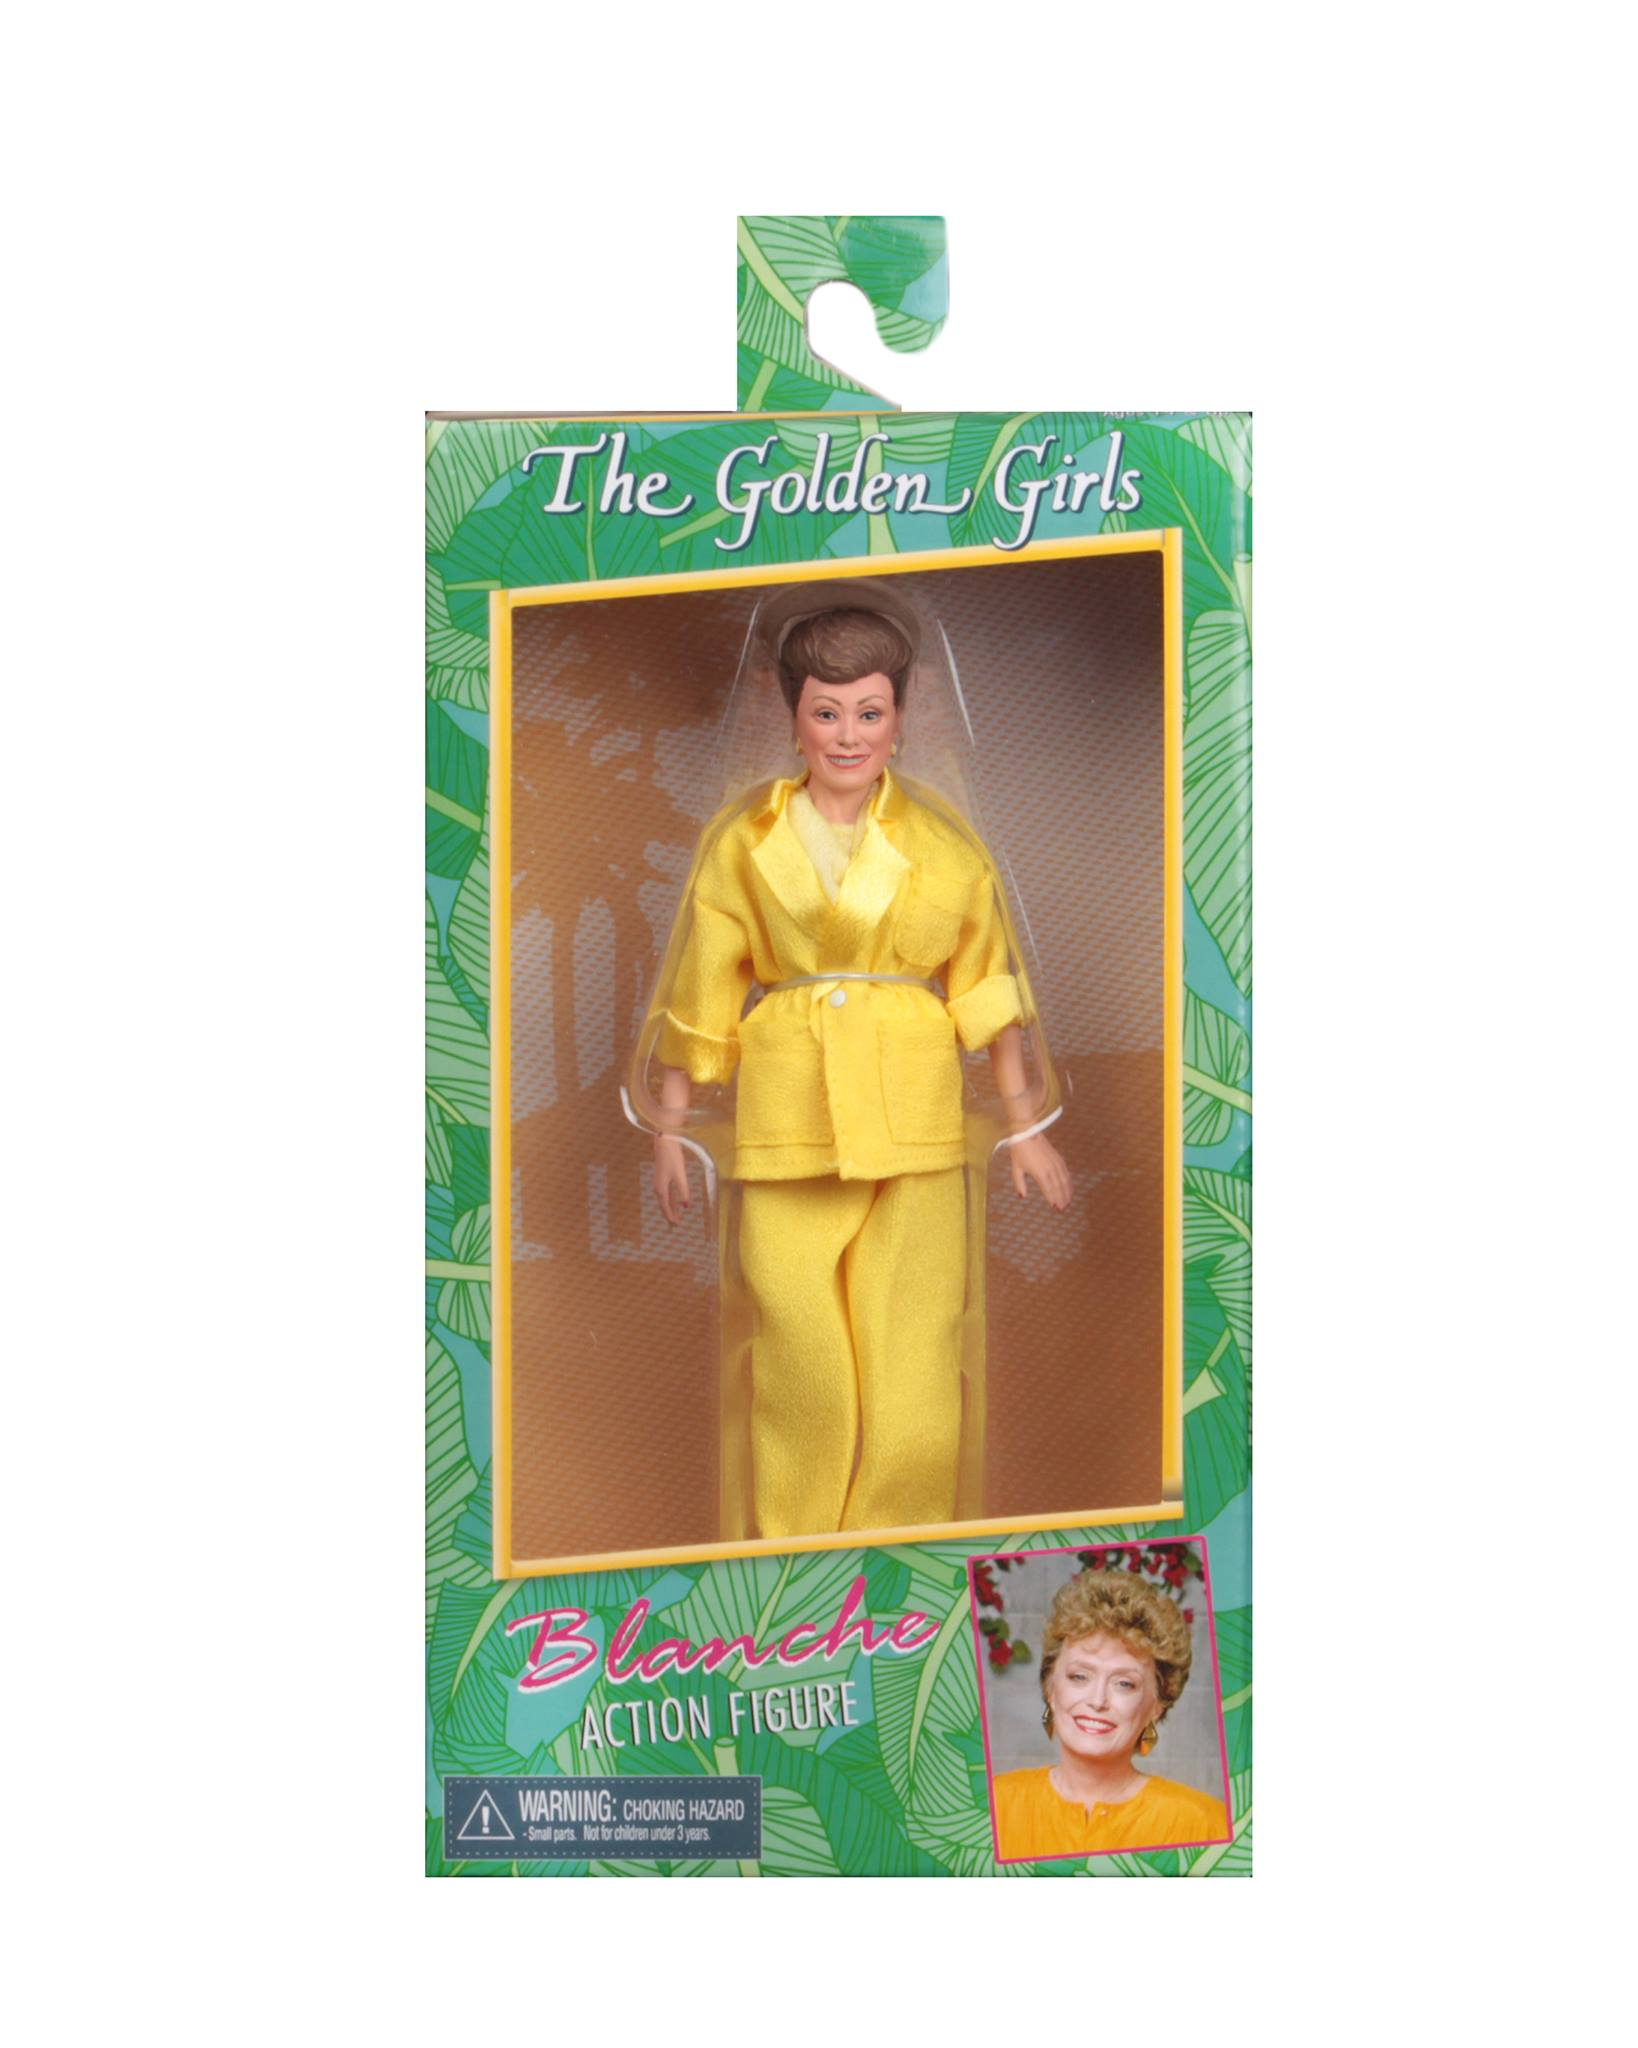 Final Packaging for the NECA Golden Girls 8-Inch Scale Figures